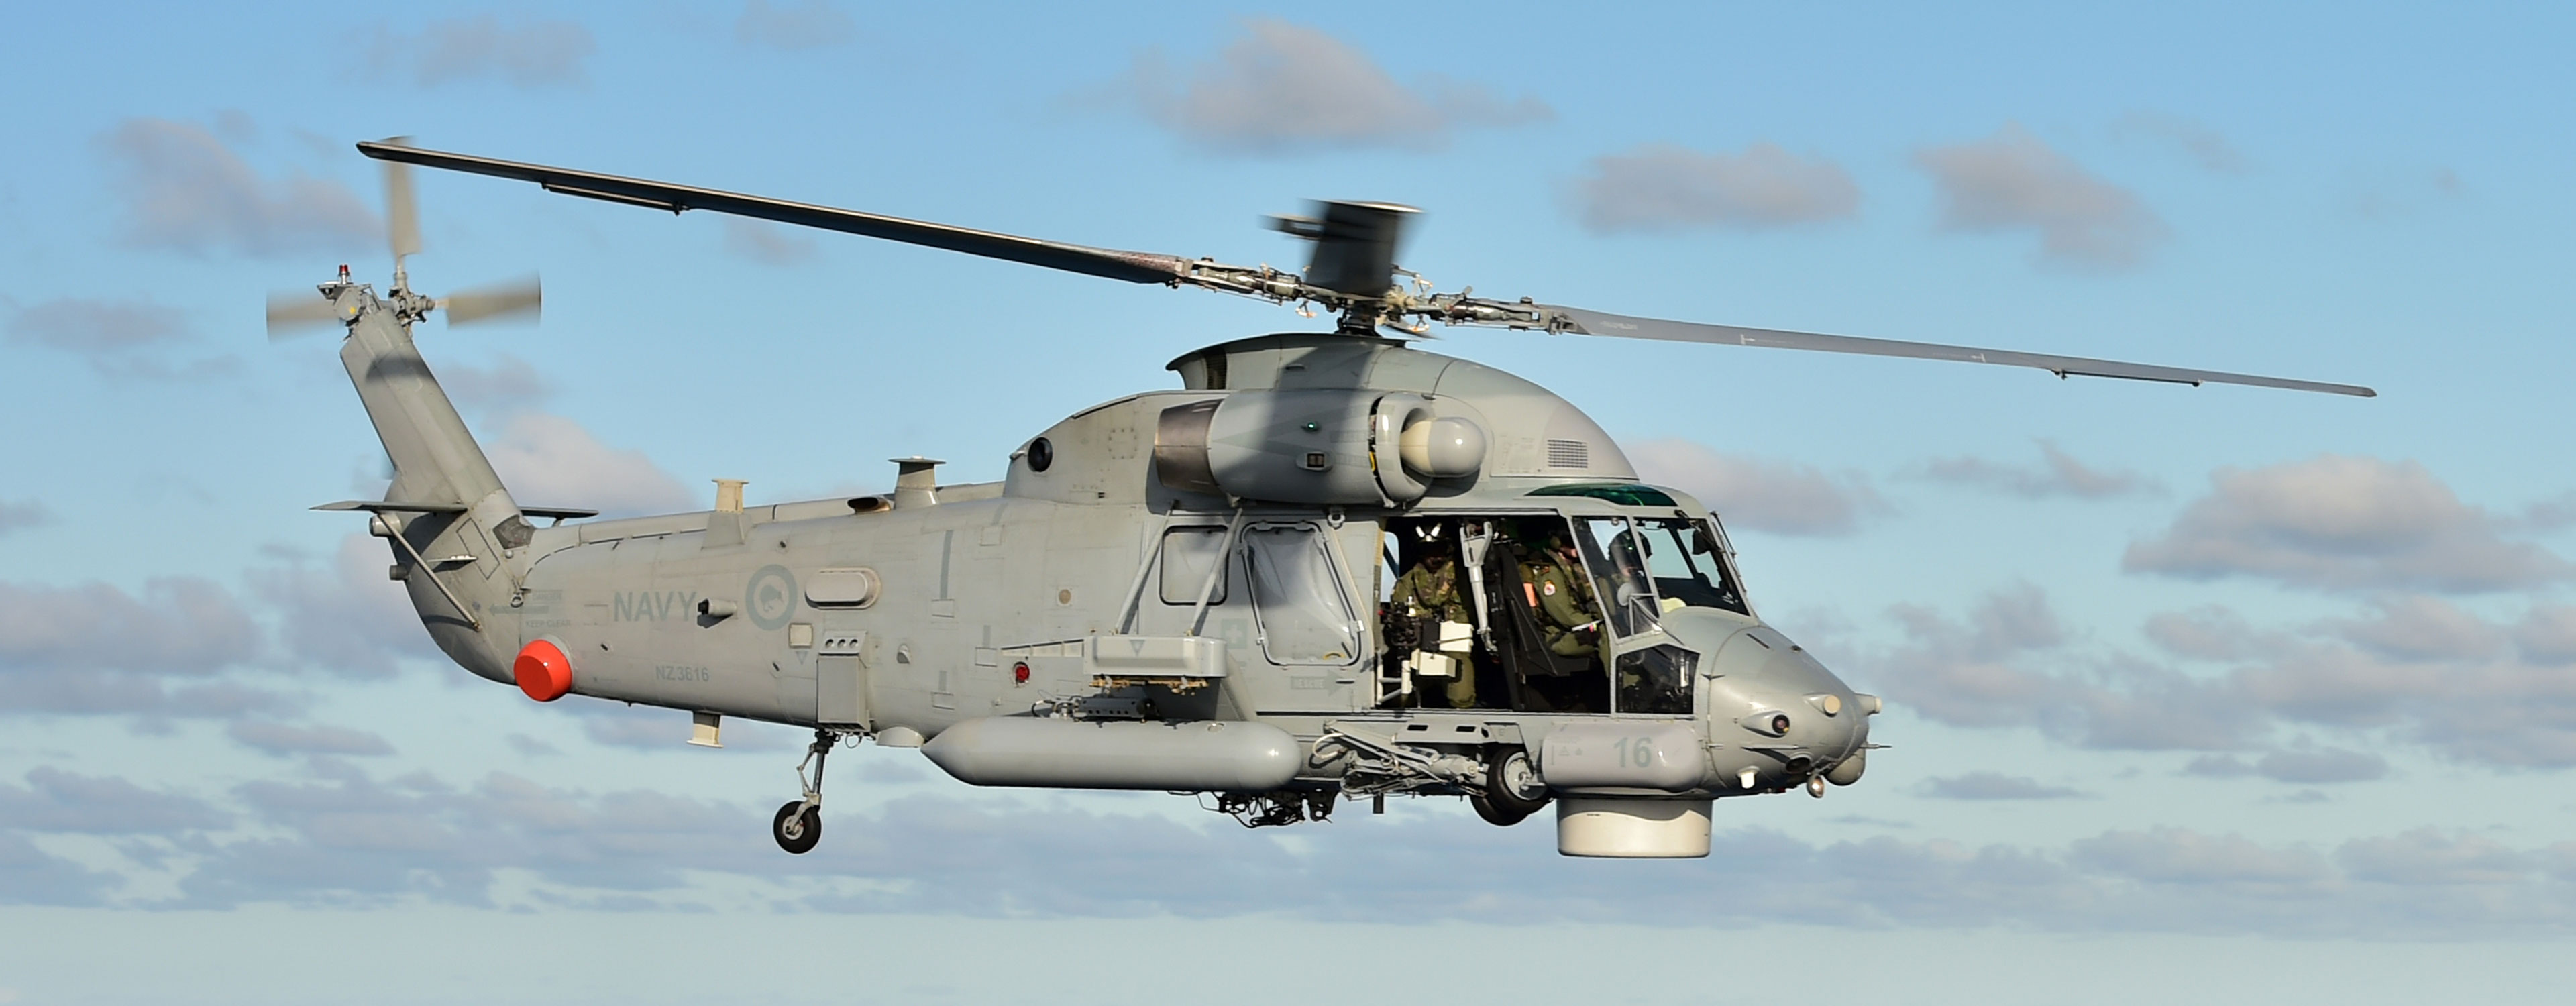 navy helicopter loadmaster full width 02